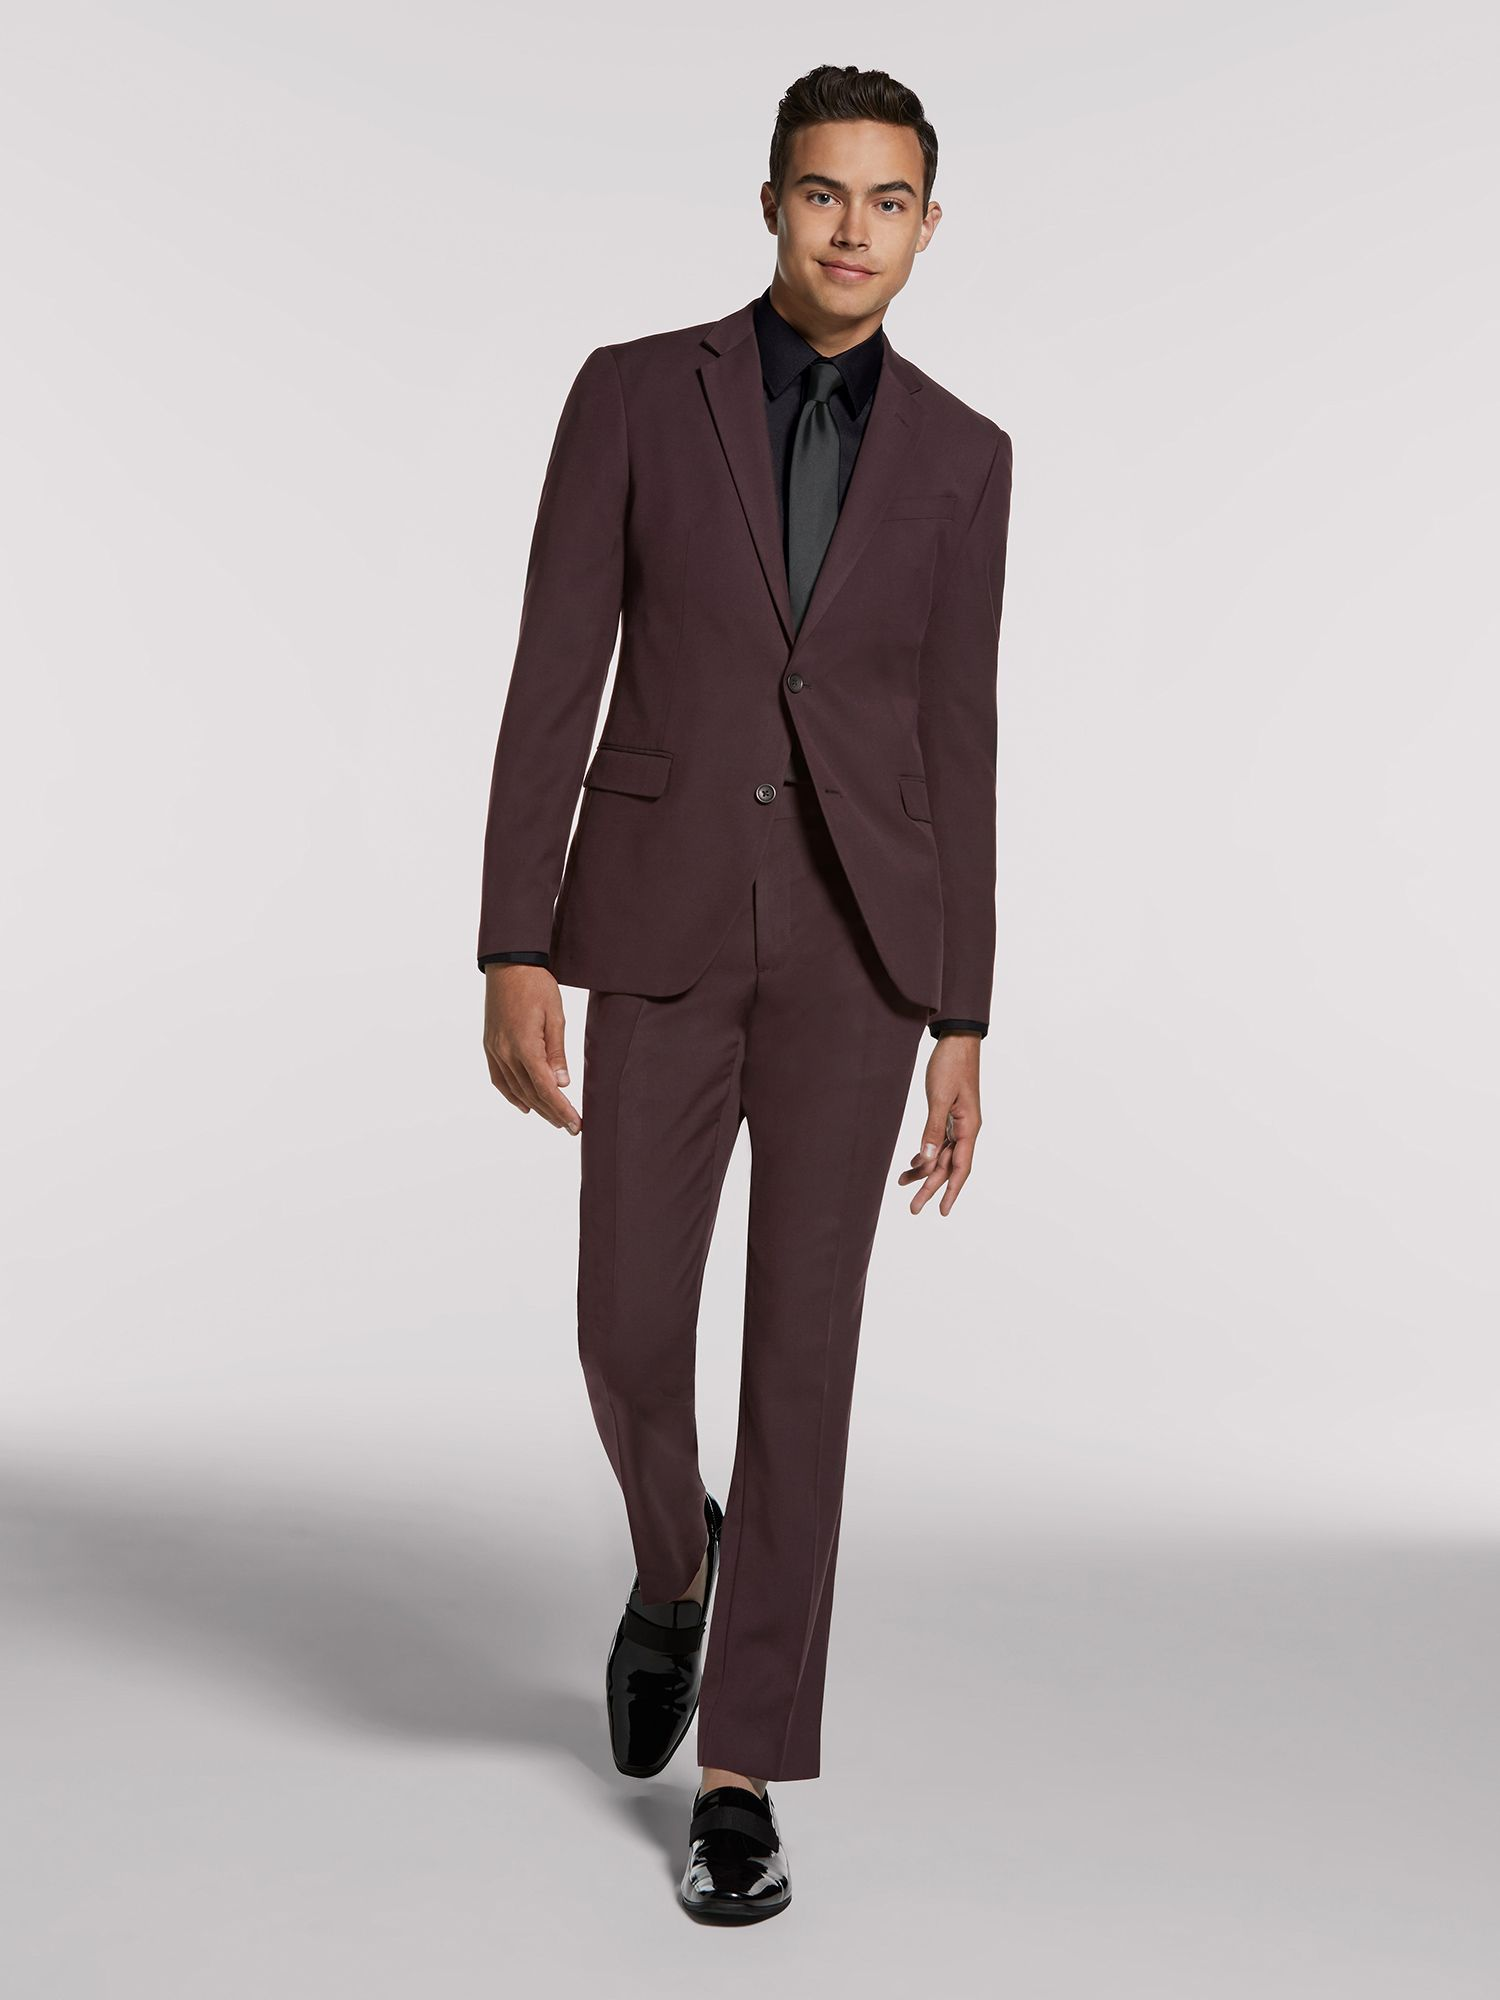 Mens Pre-Styled Looks, Suits - Go For Bold - Men's Wearhouse